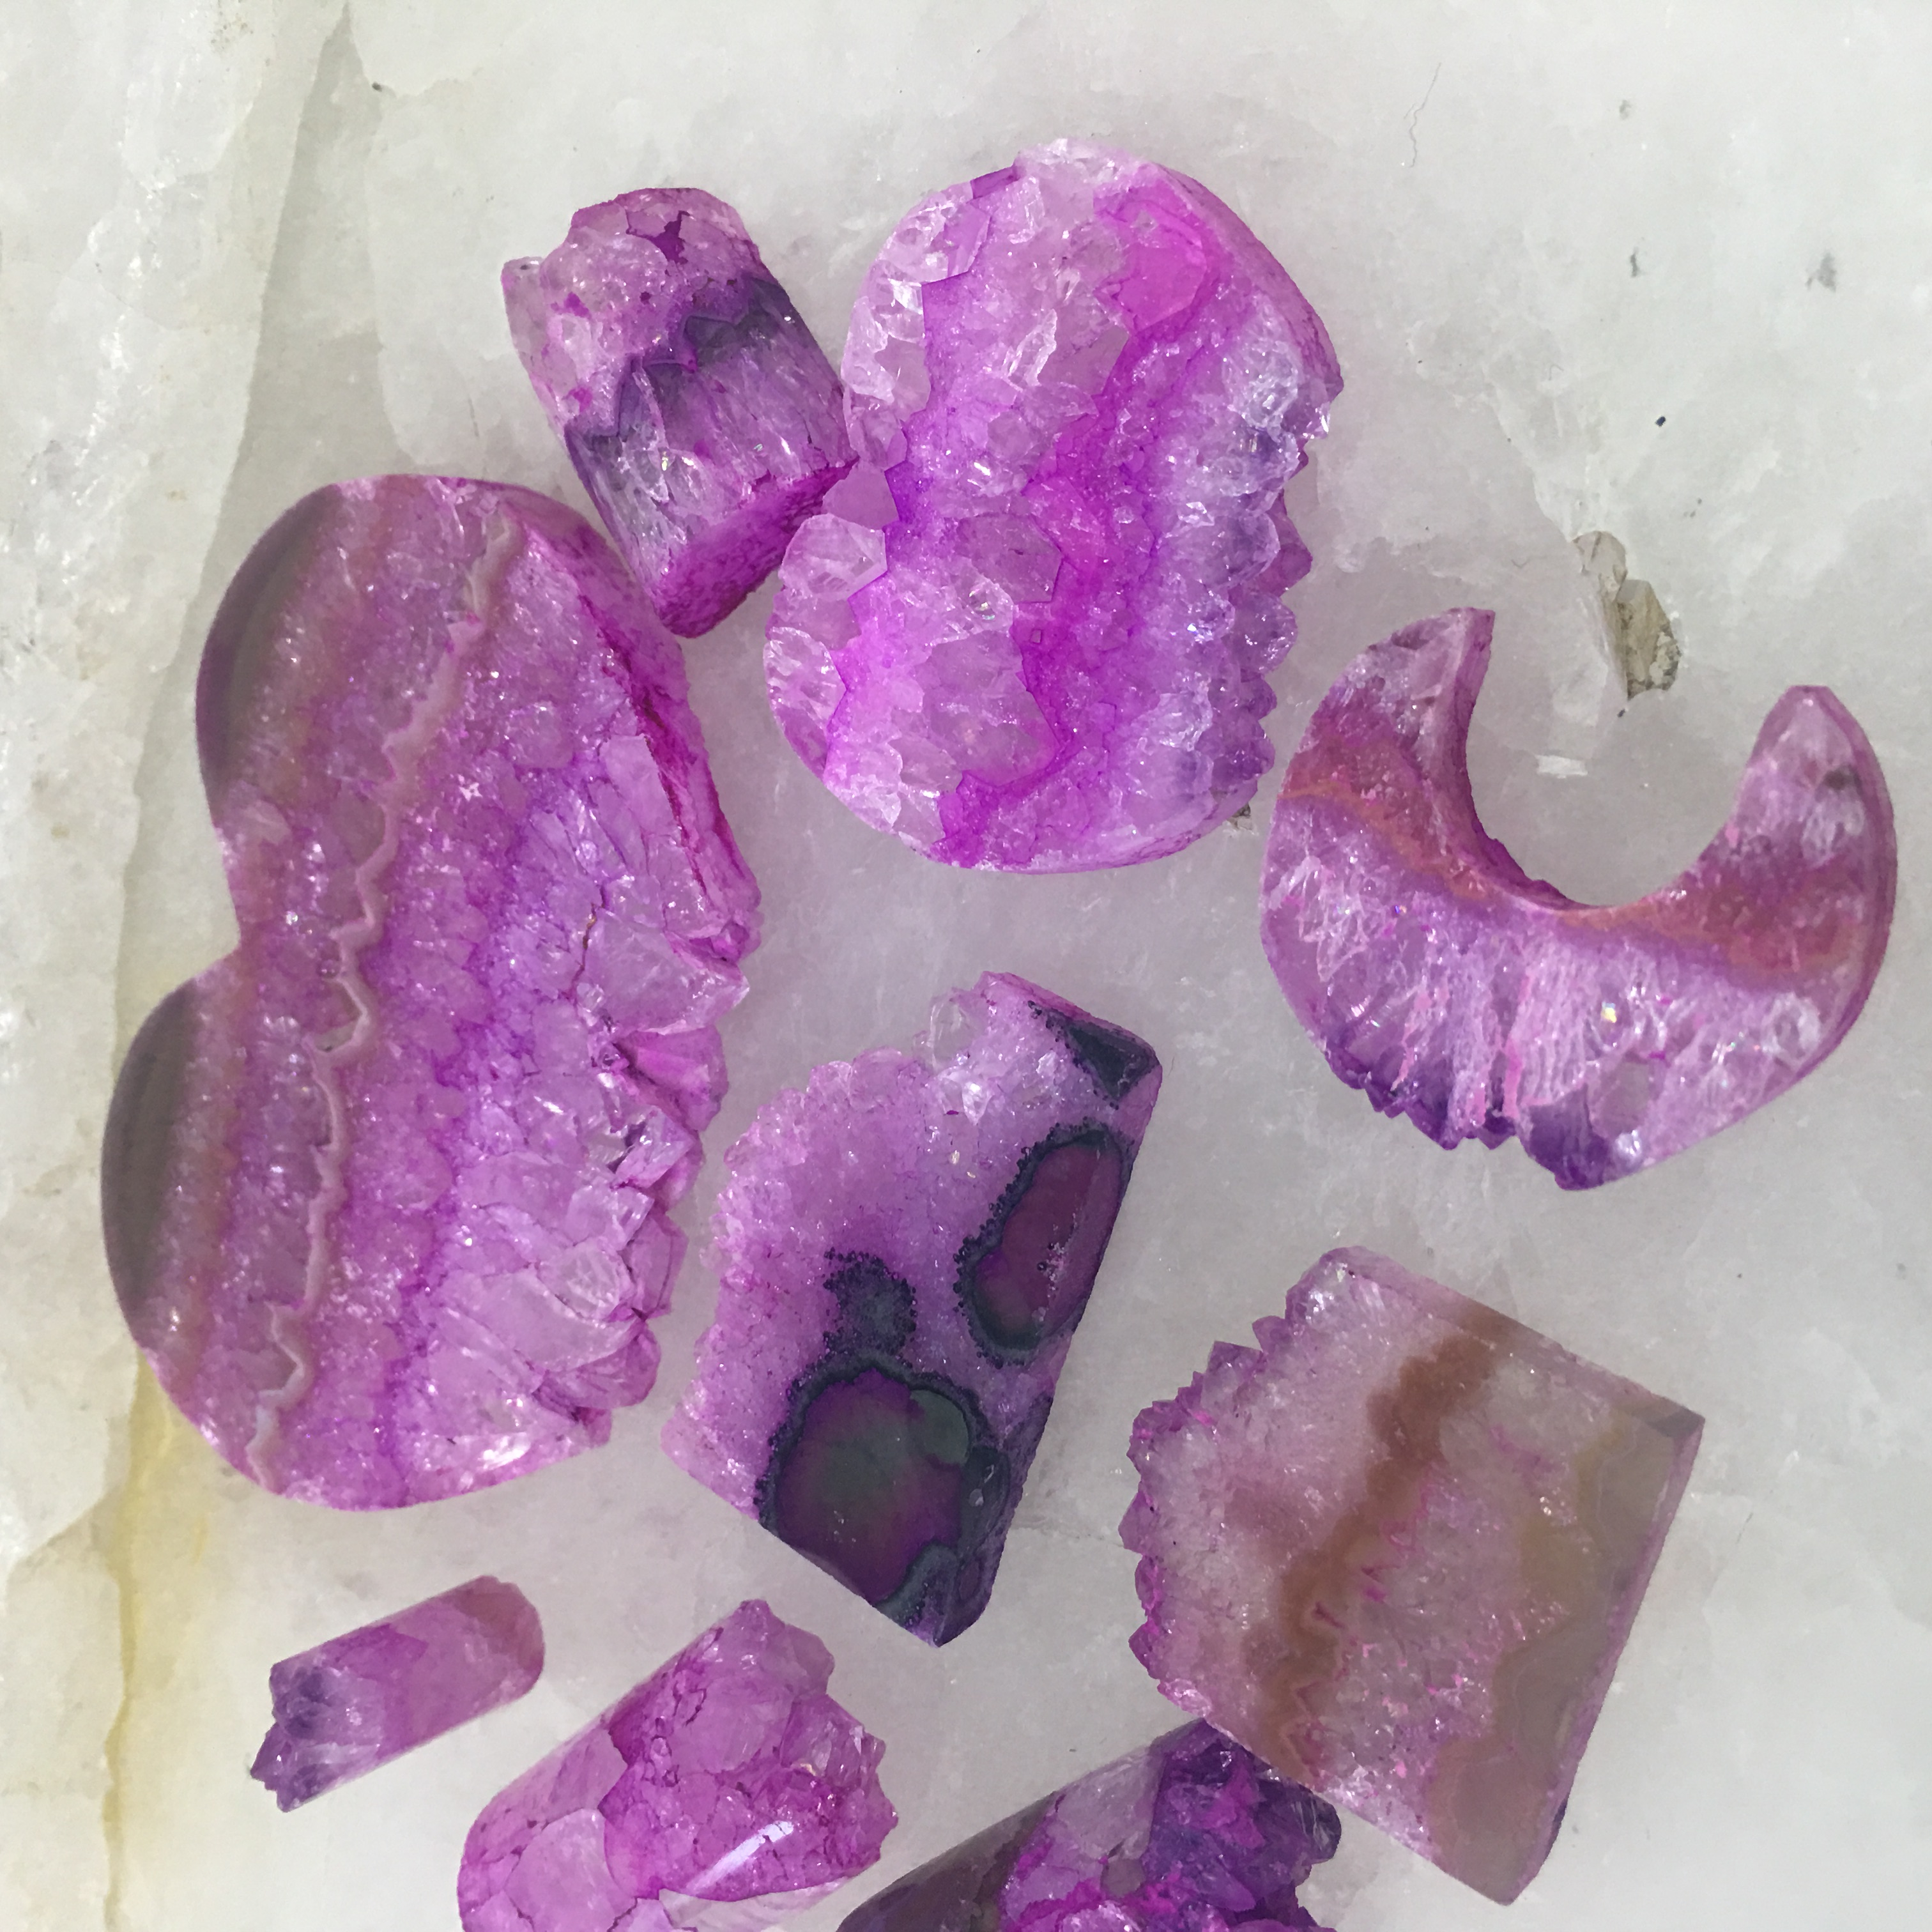 Stones from Uruguay - Pink Dyed Amethyst Druzy Slices for  Jewelry Making